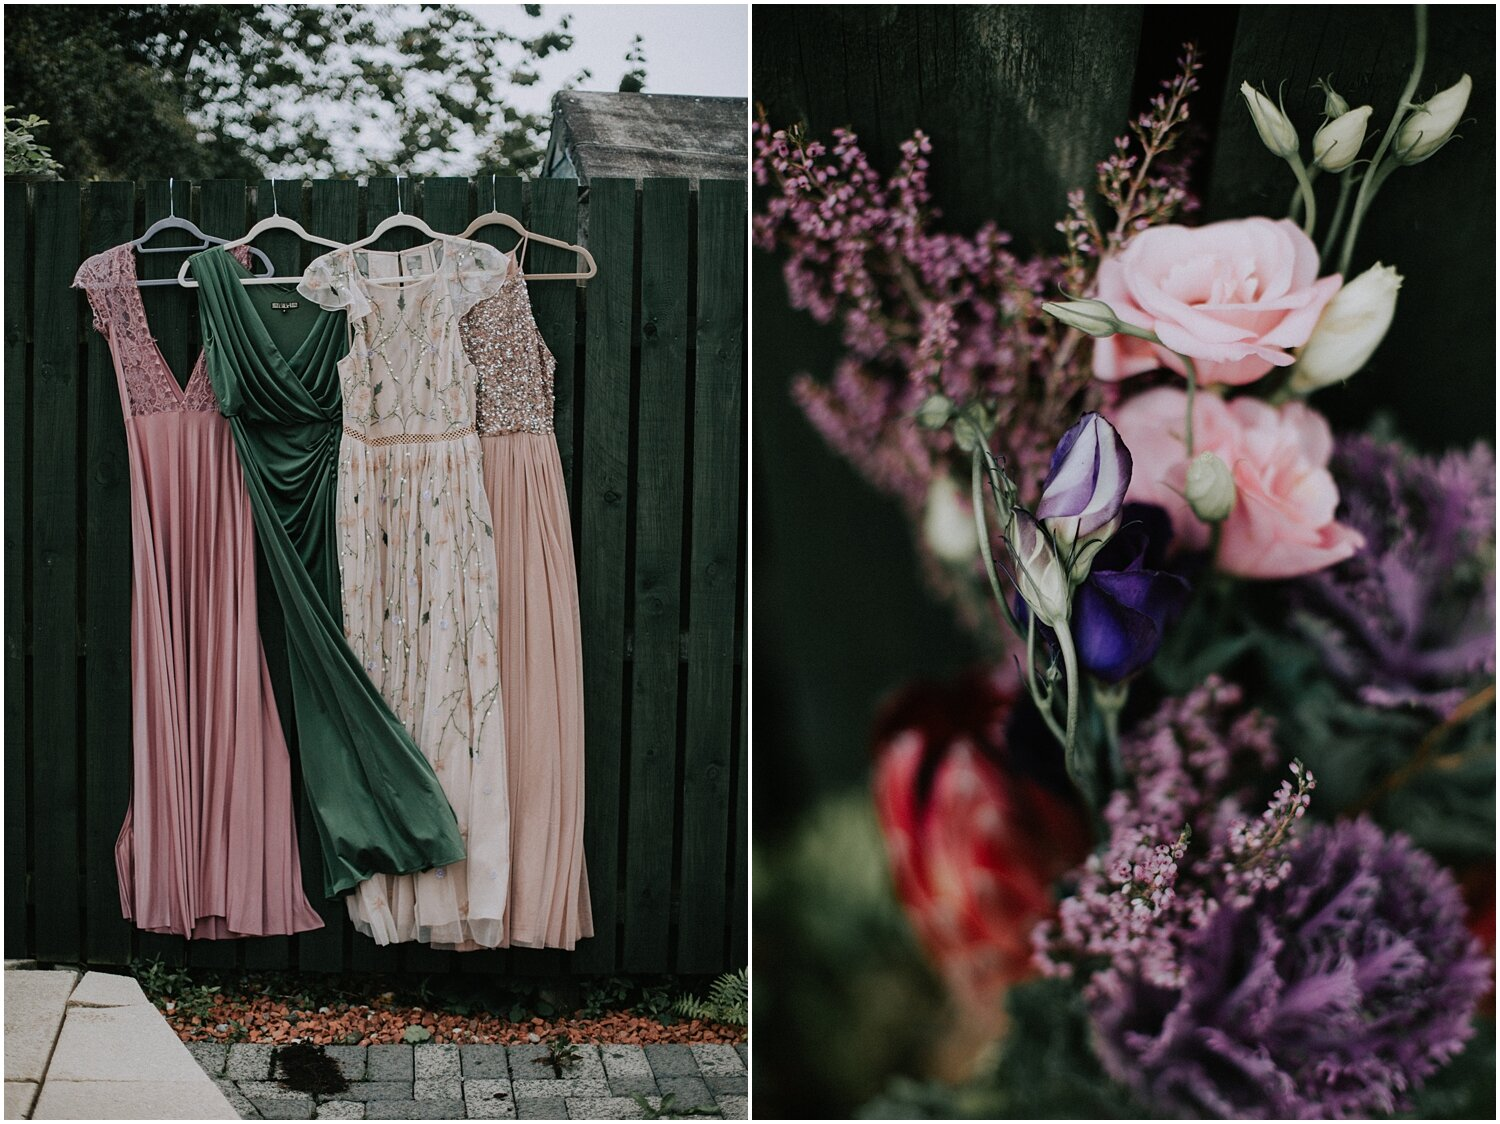 Bridesmaids alternative dresses are hanging outside of the bride's house and close up bridal bouquet